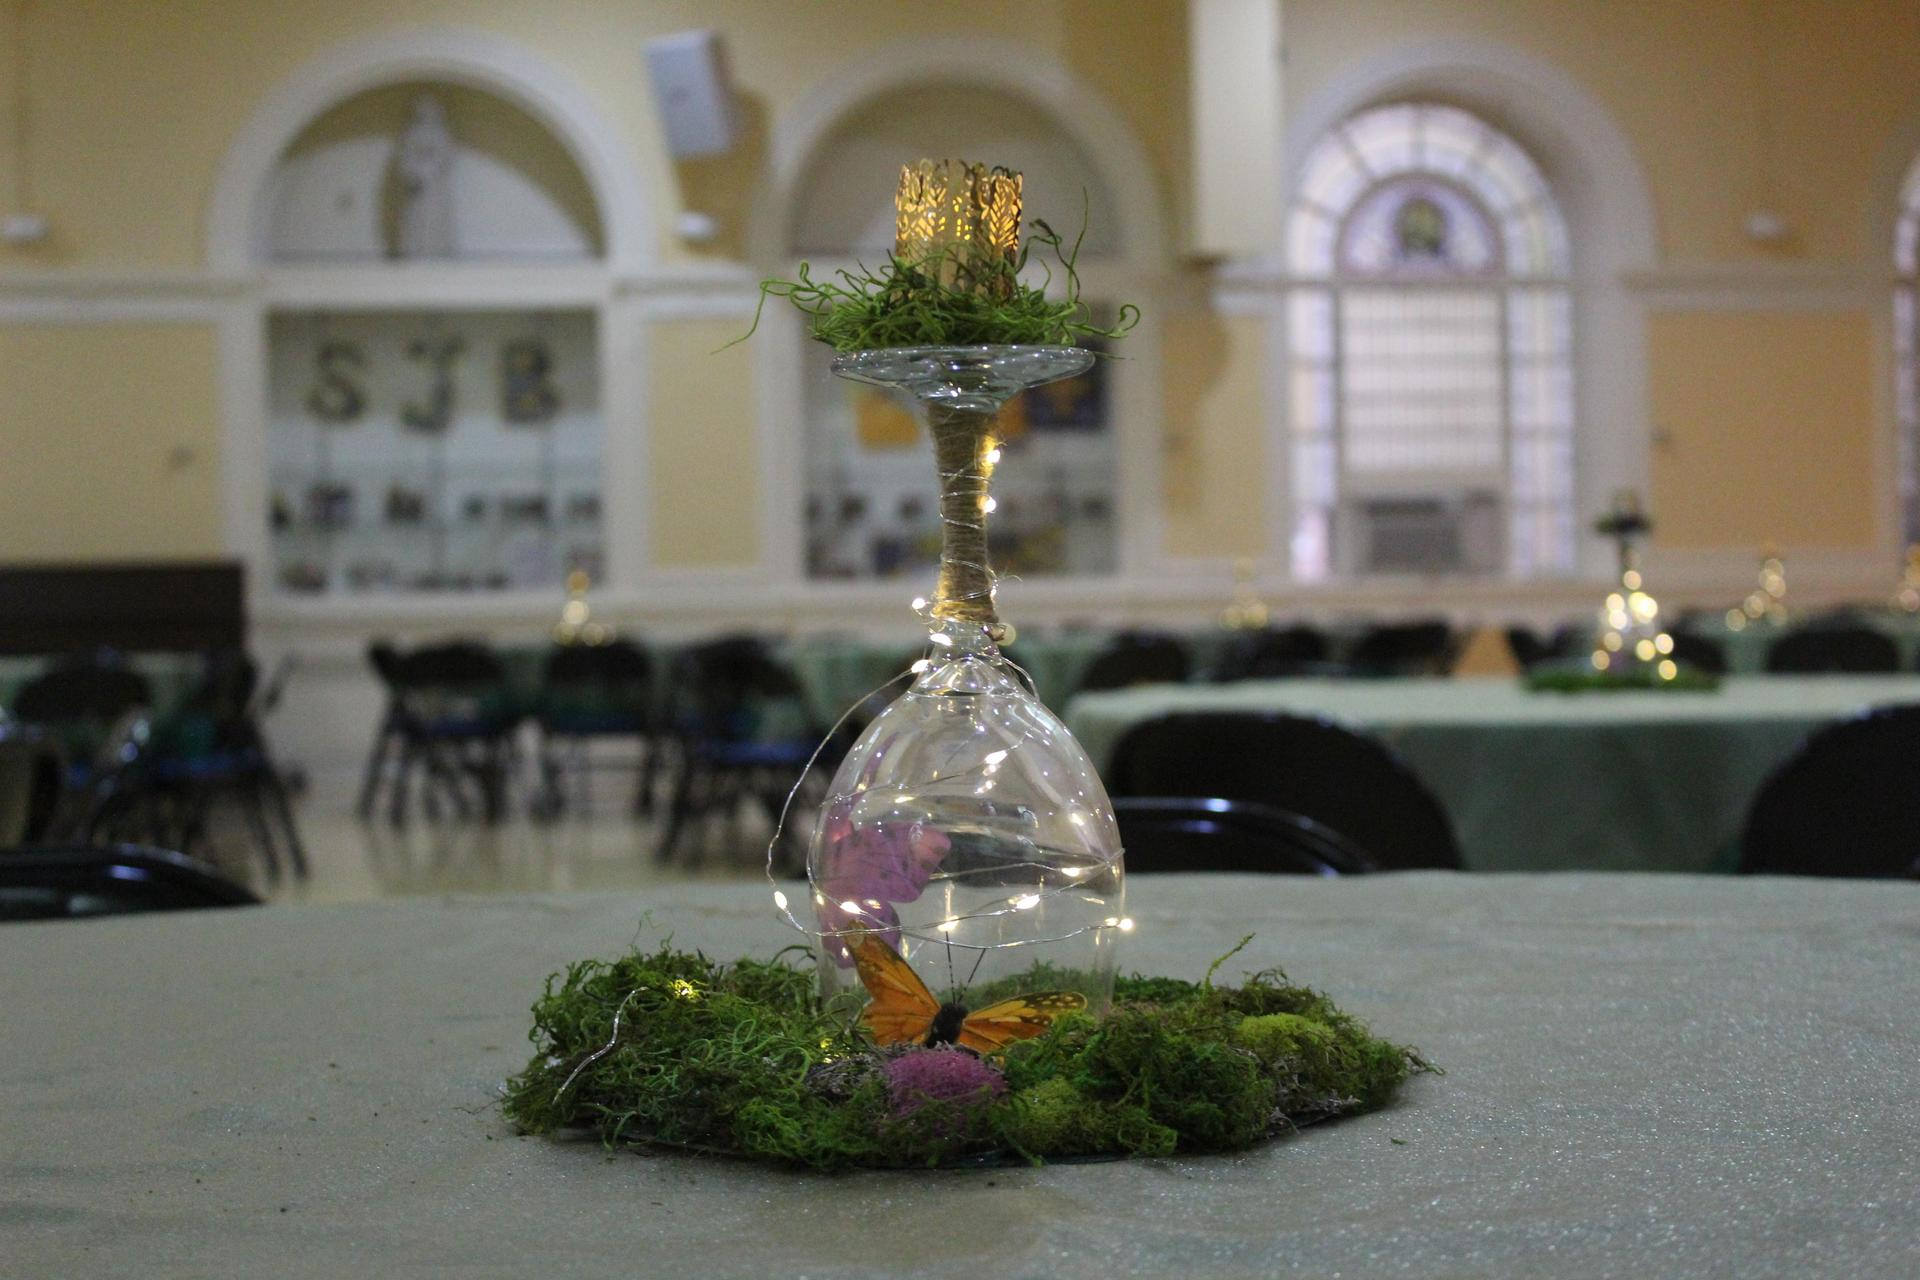 a table centerpiece of clear glass containing a monarch butterfly